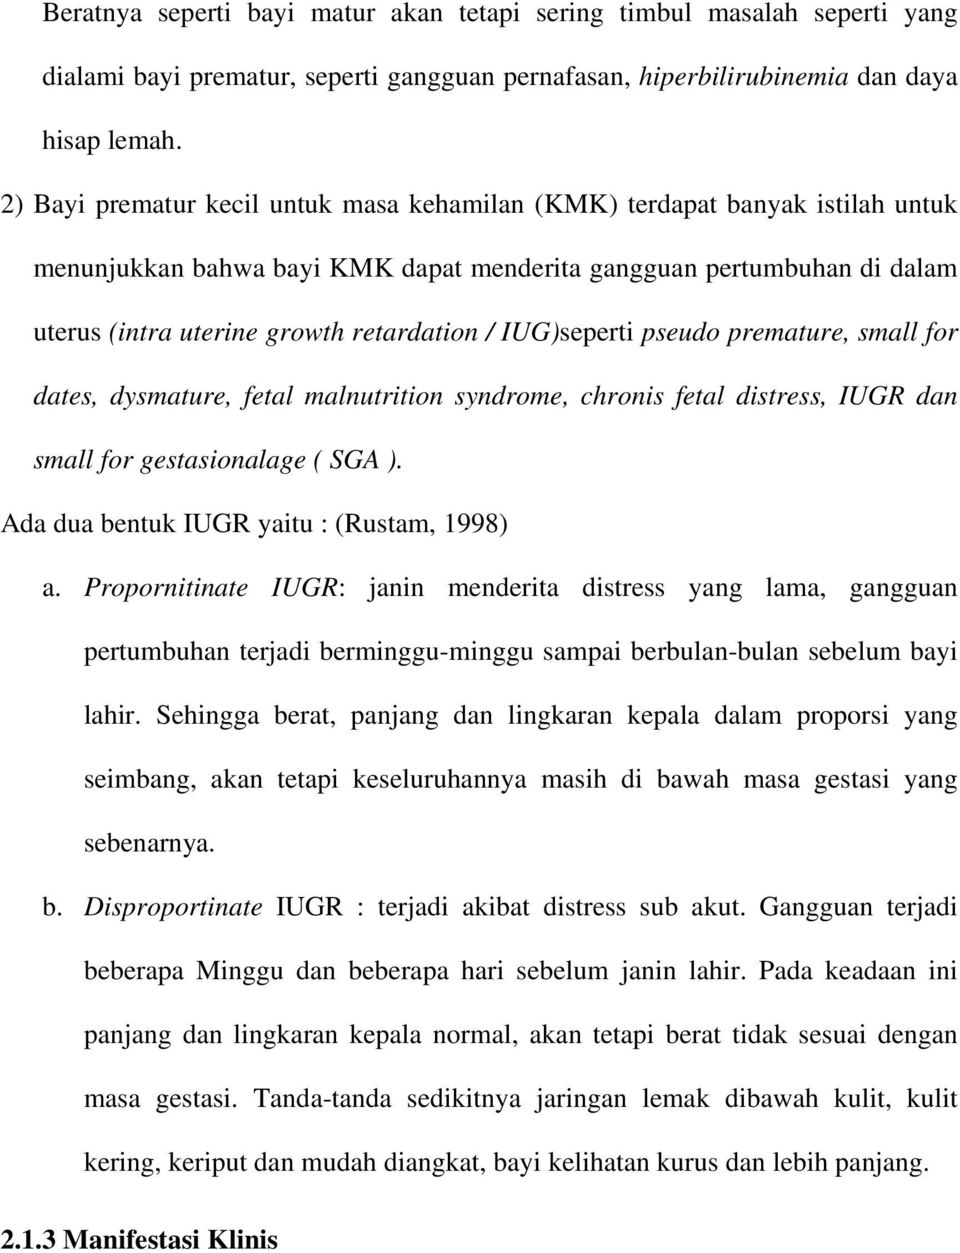 IUG)seperti pseudo premature, small for dates, dysmature, fetal malnutrition syndrome, chronis fetal distress, IUGR dan small for gestasionalage ( SGA ). Ada dua bentuk IUGR yaitu : (Rustam, 1998) a.